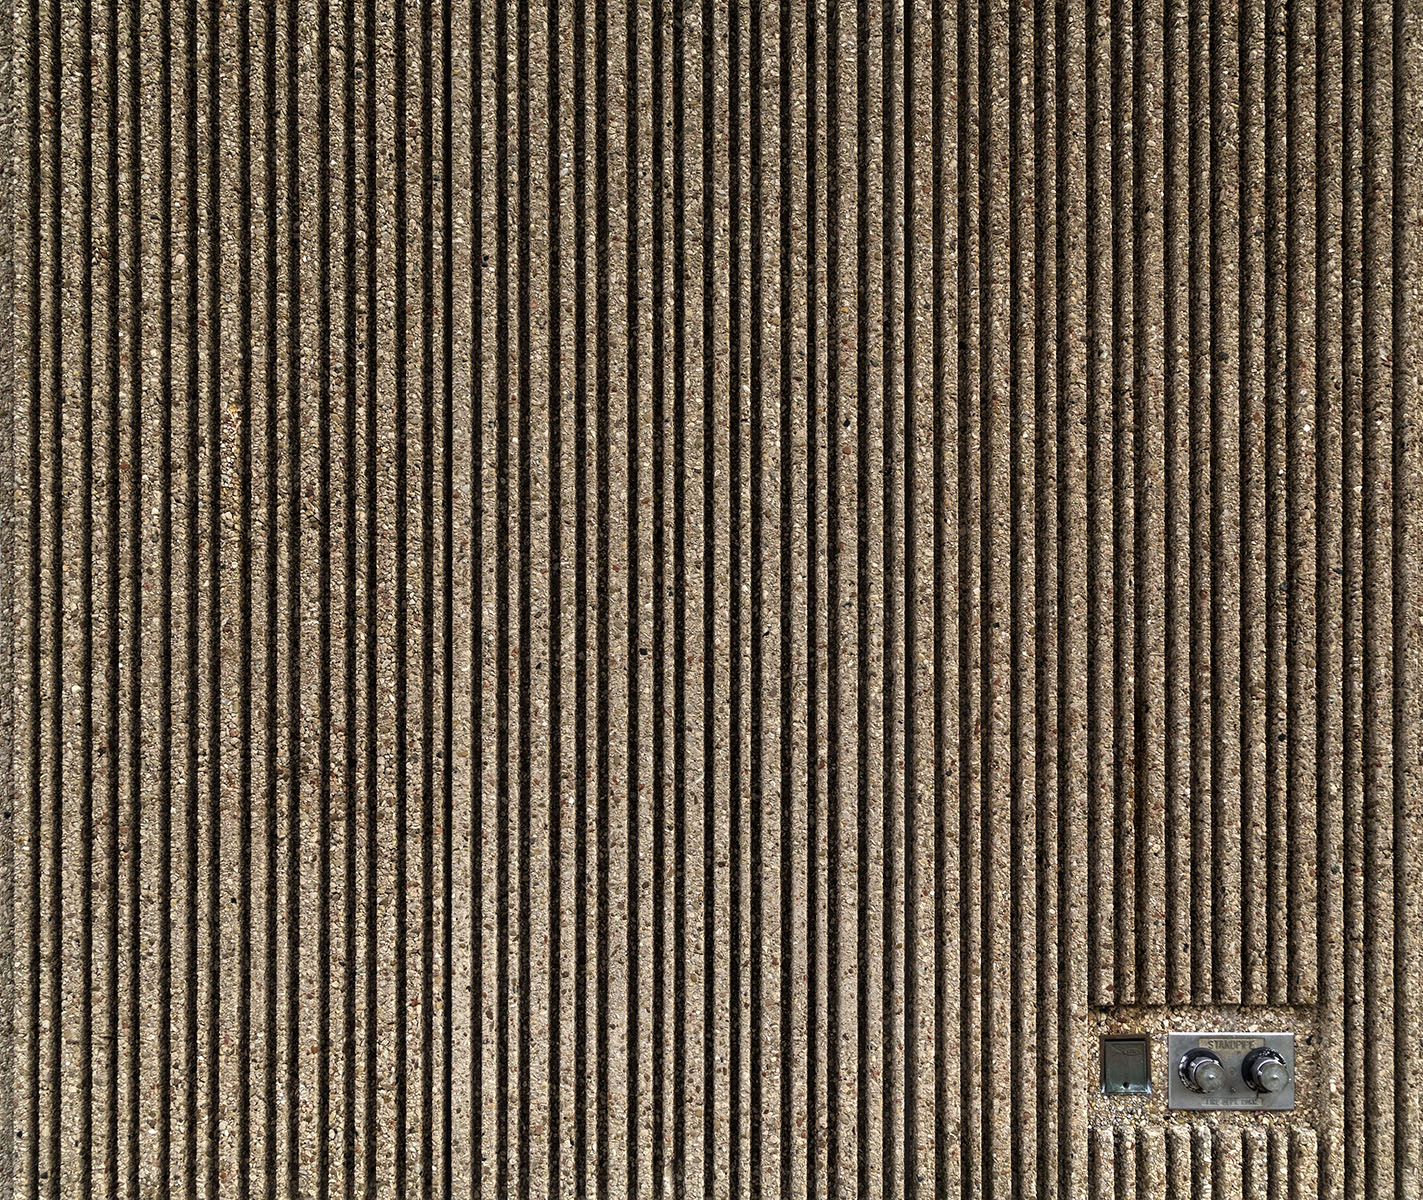 20151223. Beauty in coarse, grooved, poured-in-place concrete. M